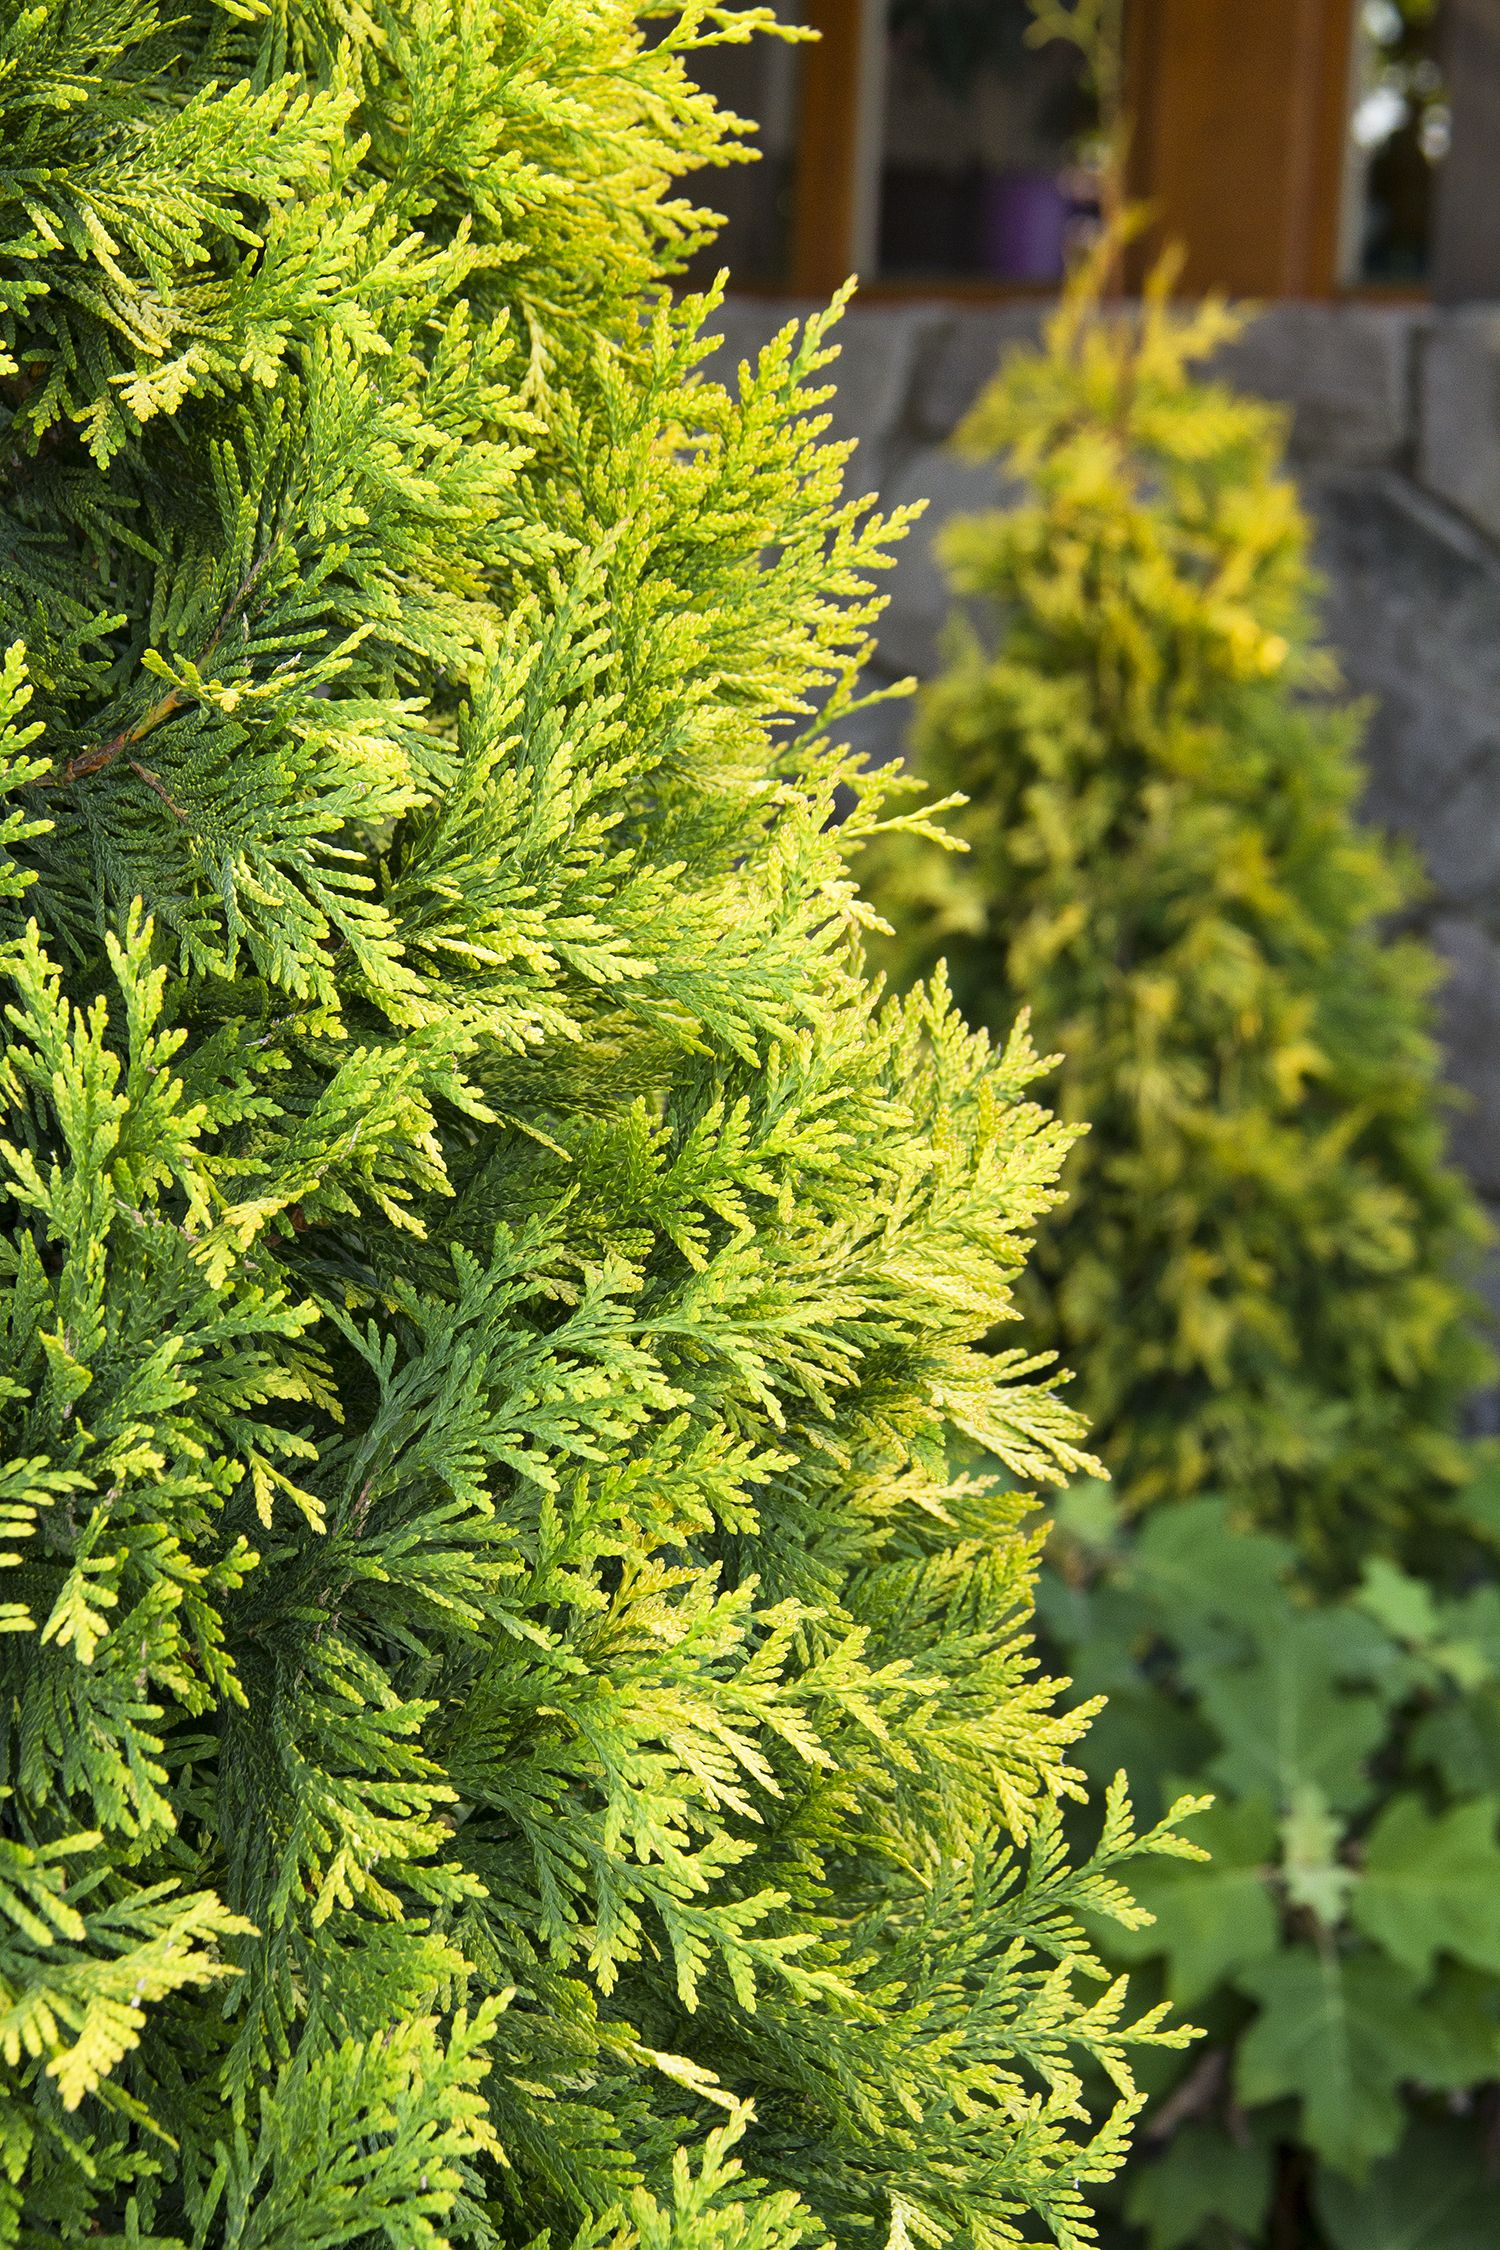 Golden Feather Arborvitae Large Tall Evergreen Upright Shrub With Golden Yellow Foliage Provides Multi Seas Shrubs For Privacy Arborvitae Evergreen Shrubs